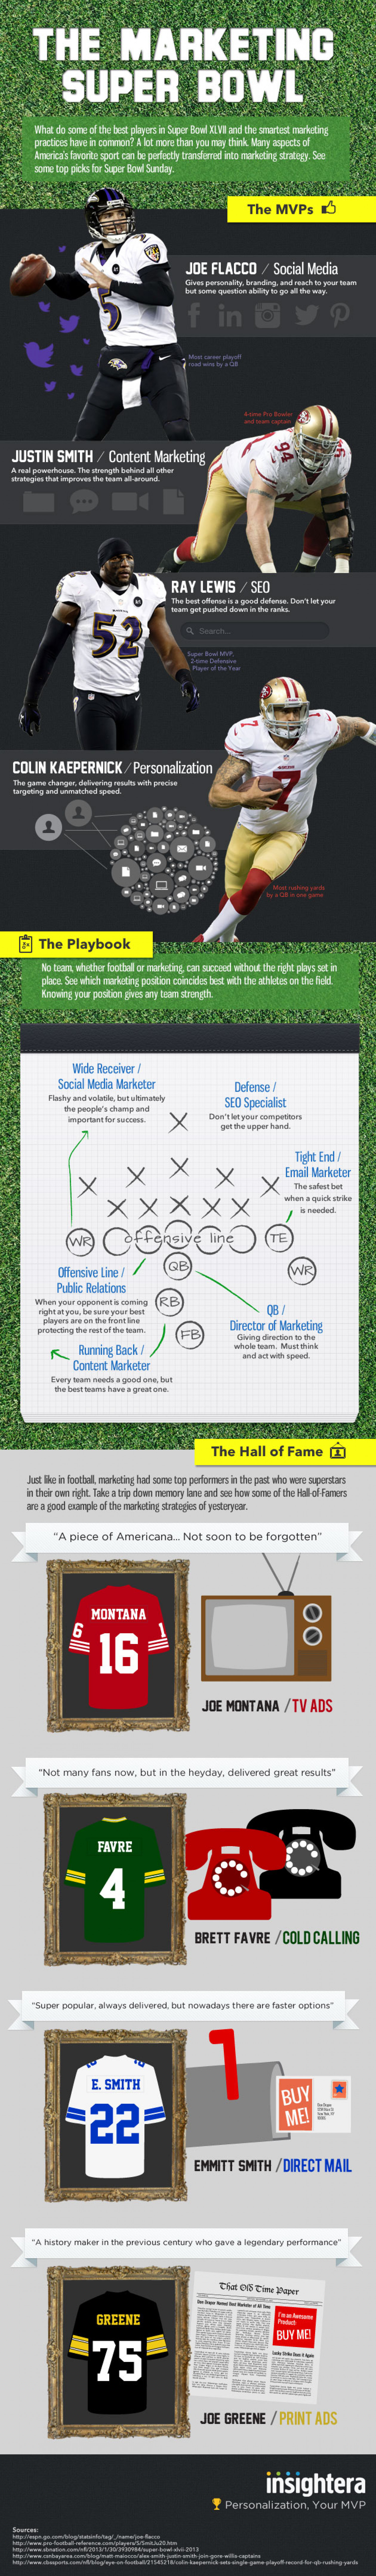 The Marketing Super Bowl Infographic